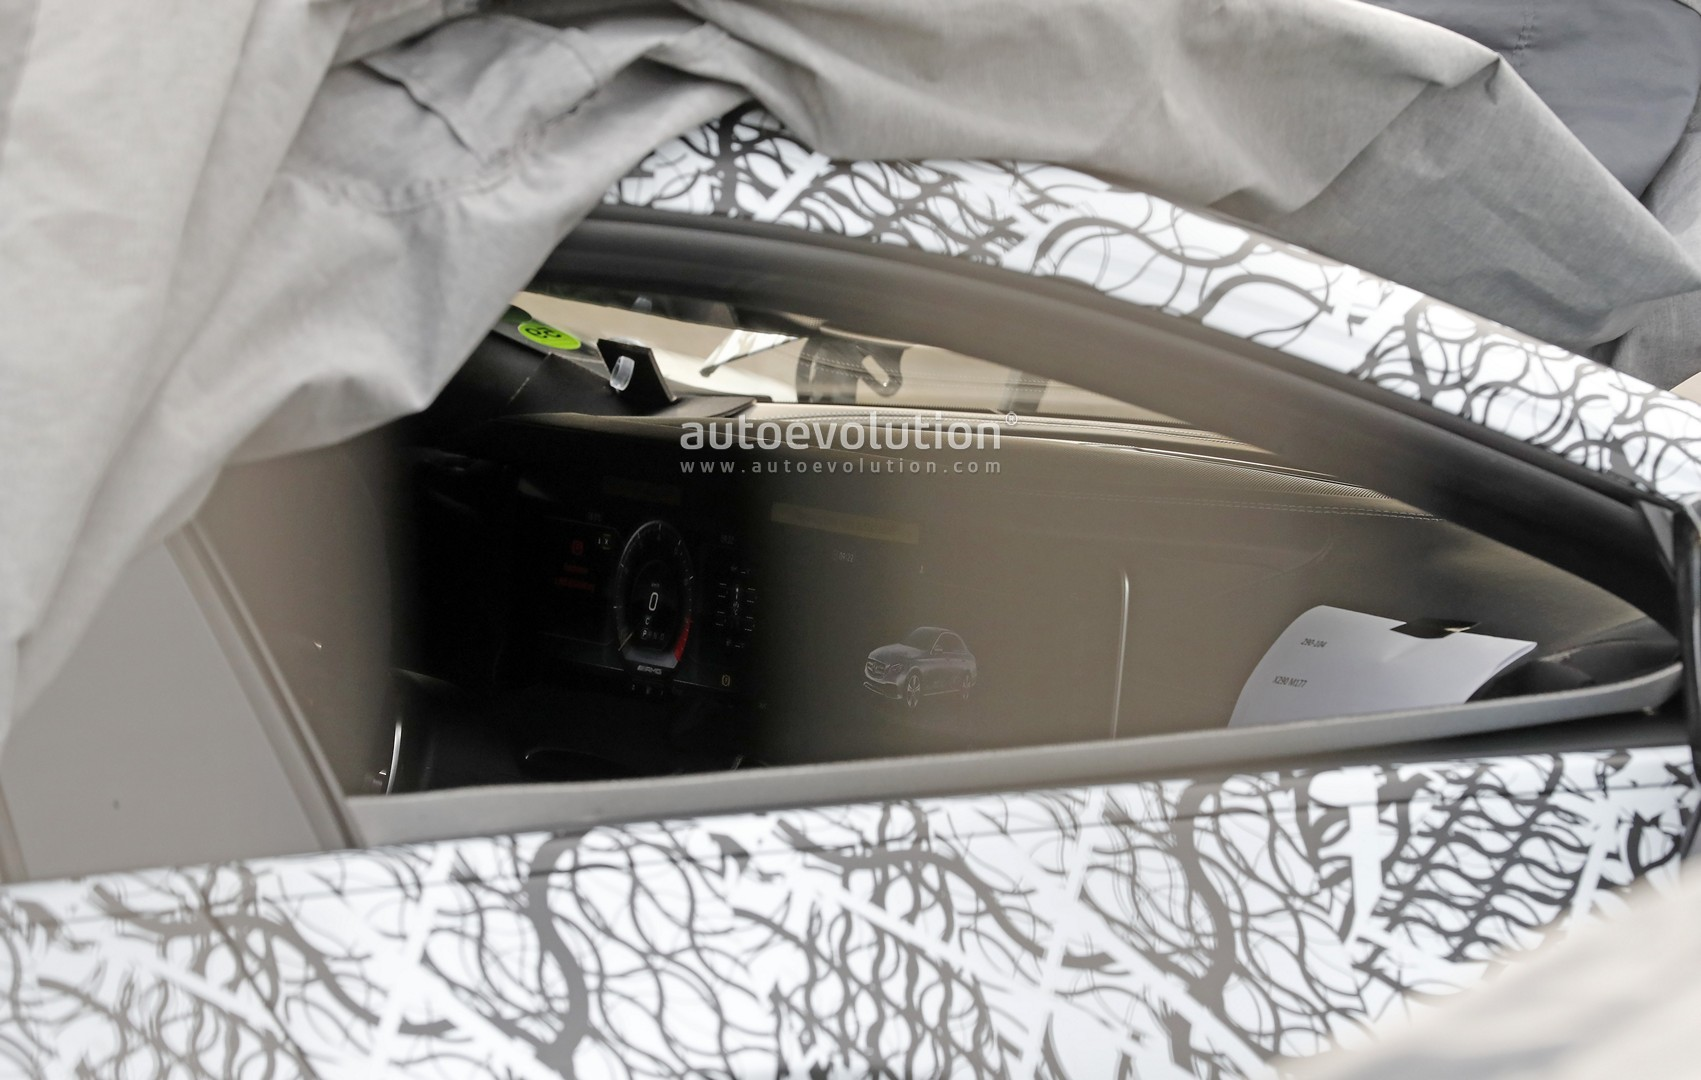 ... Mercedes-AMG GT 4-Door Reveals E-Class Dashboard Lifts Its Hood ... & Spyshots: Mercedes-AMG GT 4-Door Reveals E-Class Dashboard Lifts ...